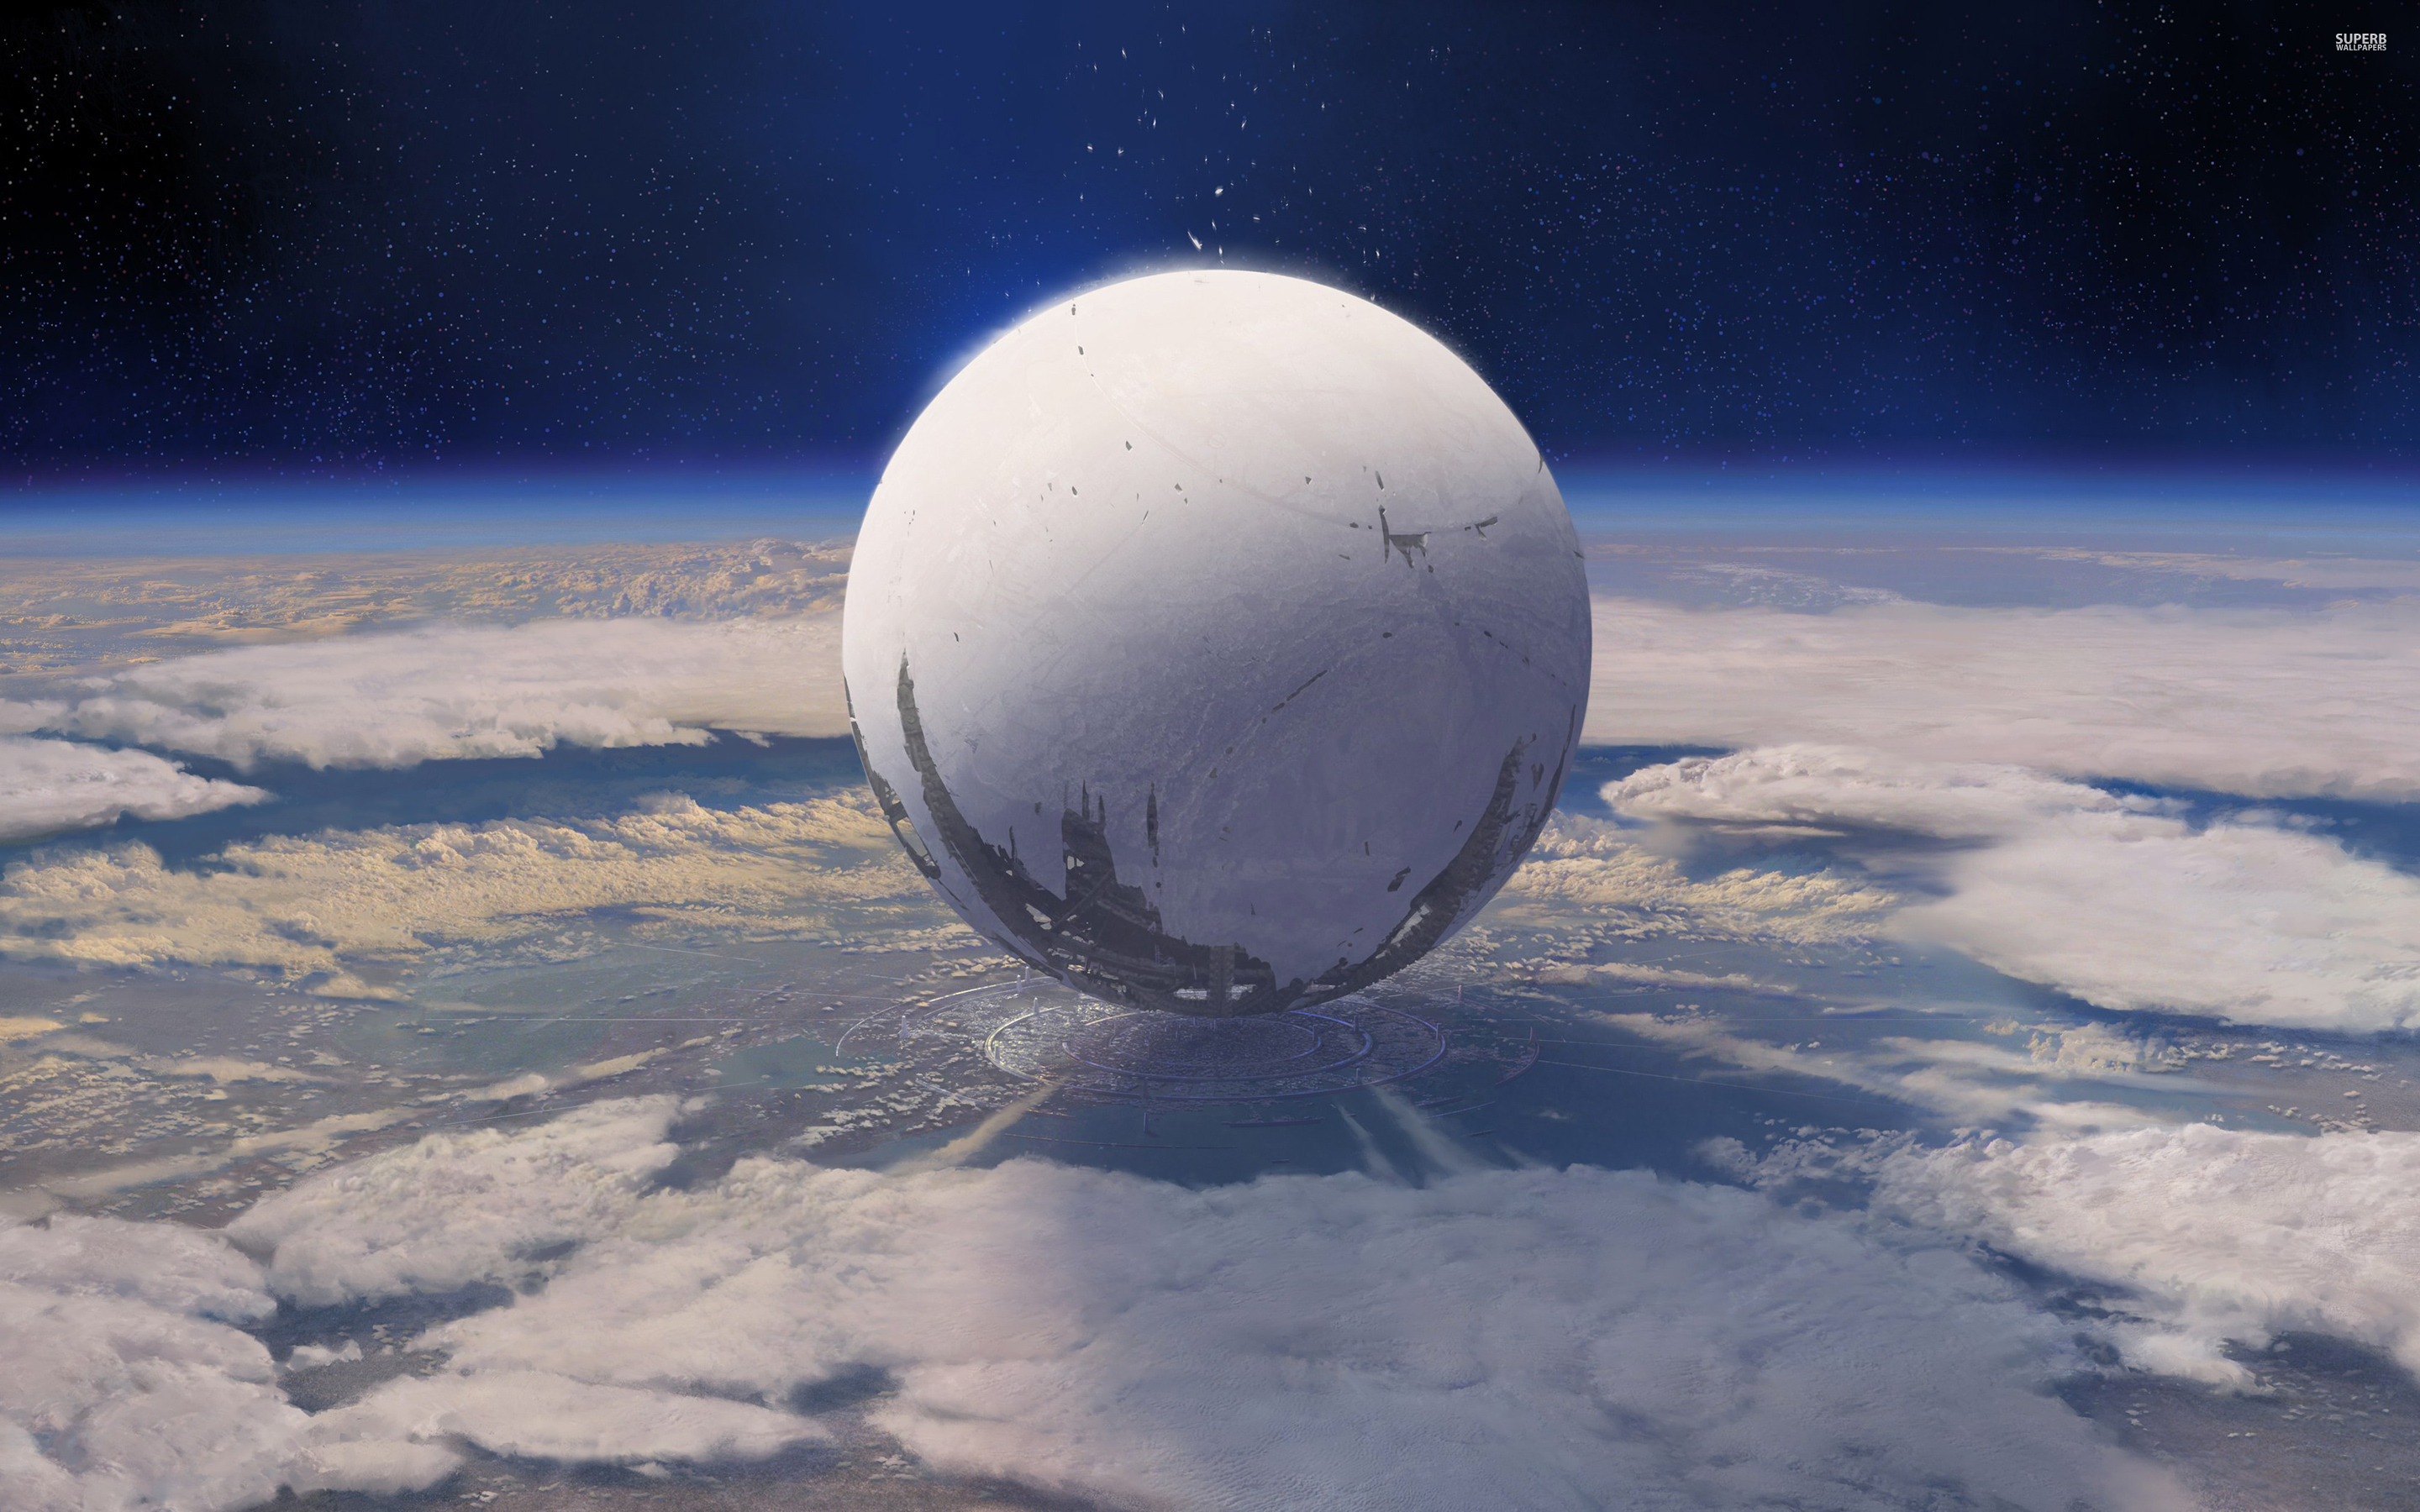 Destiny wallpaper 2880x1800 jpg